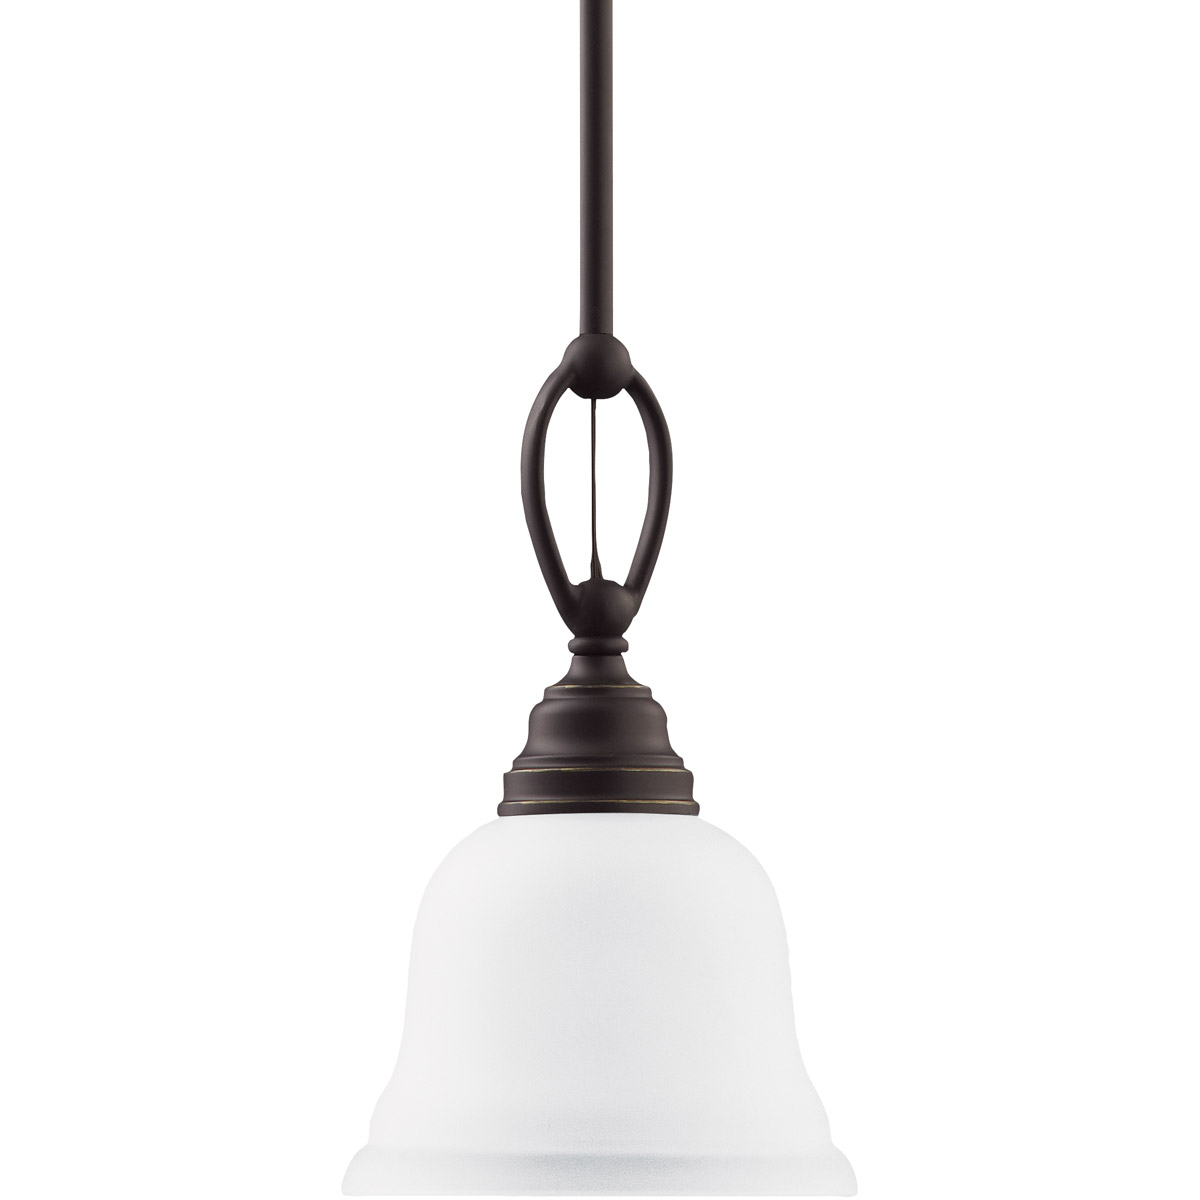 Sea Gull Lighting Wheaton 1 Light Mini Pendant in Heirloom Bronze 61625-782